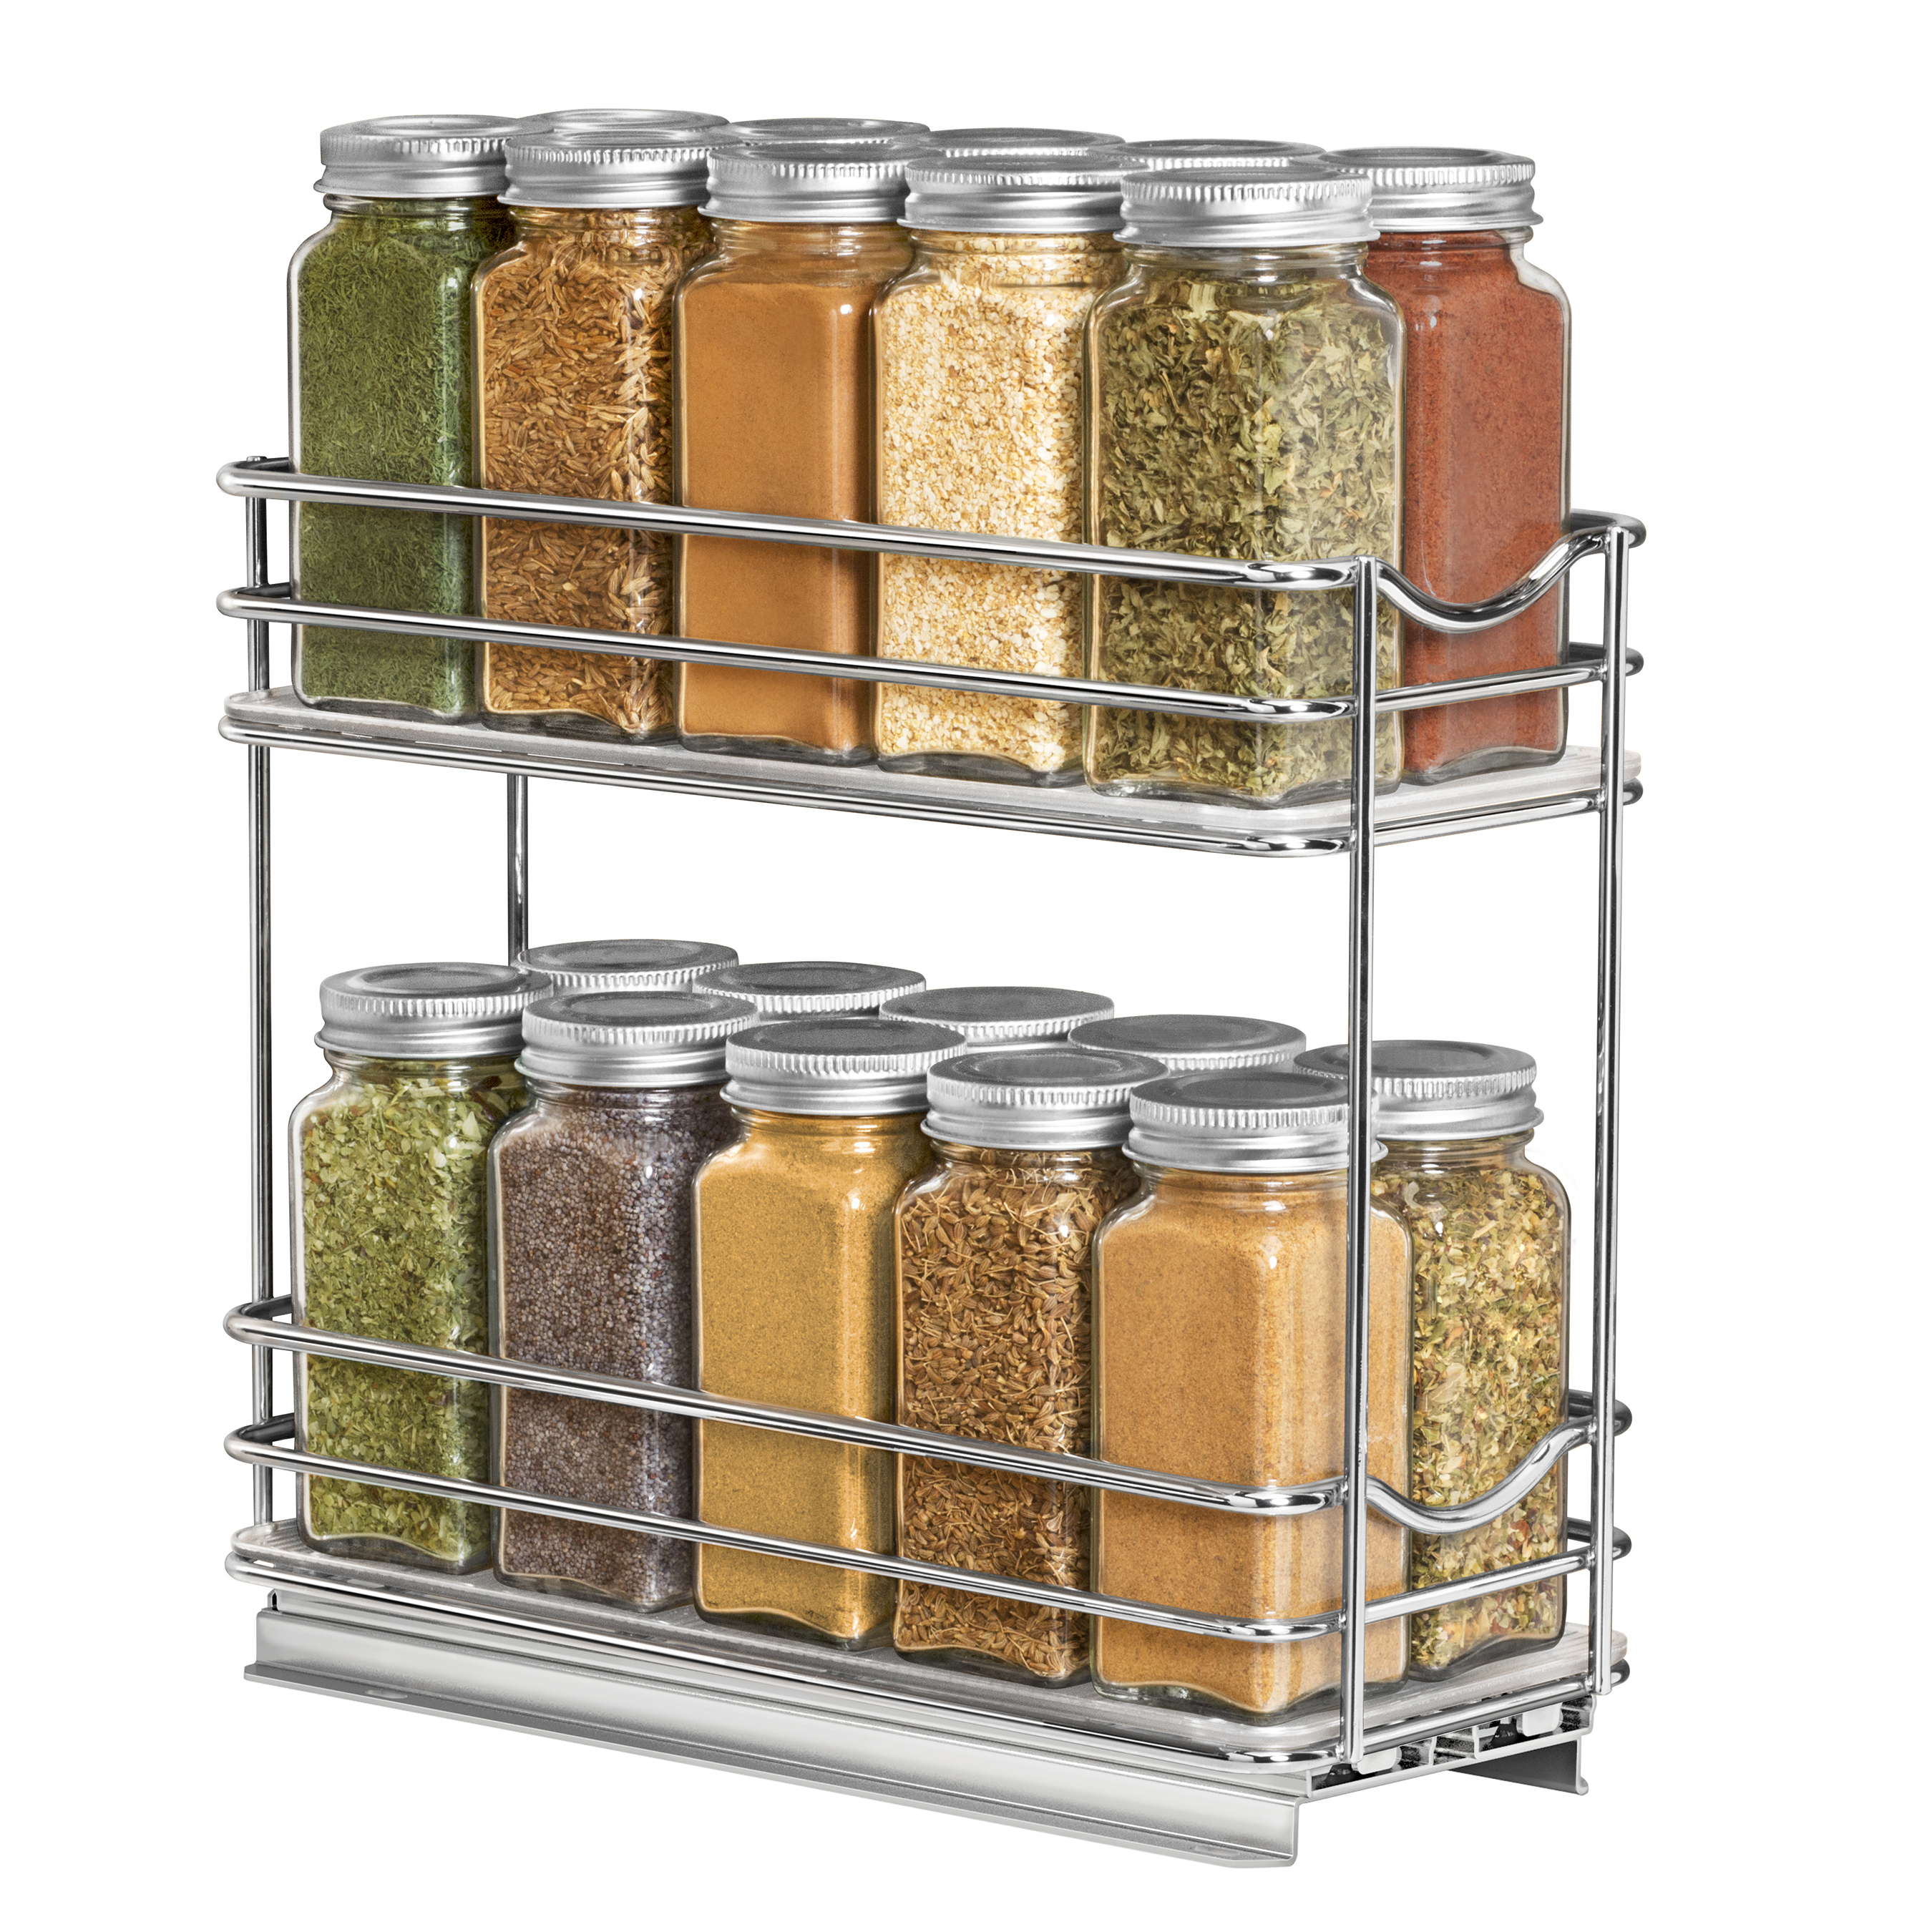 430422 Professional Roll Out Spice Organizer Two Tier ...